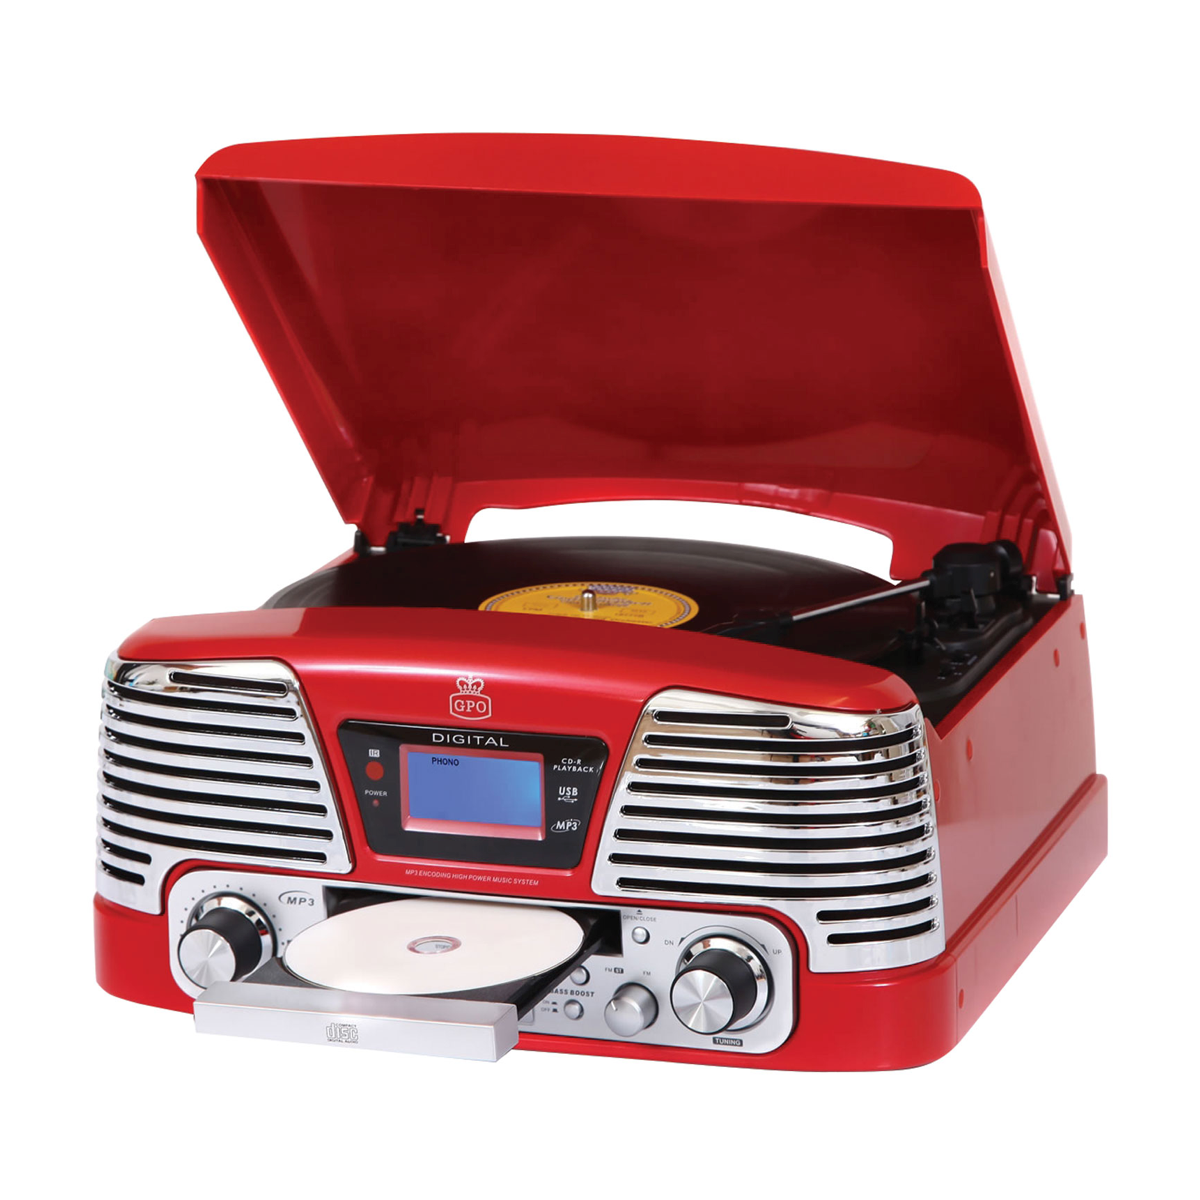 GPO Retro Memphis Turntable, AVStore.in, Turntable - AVStore.in